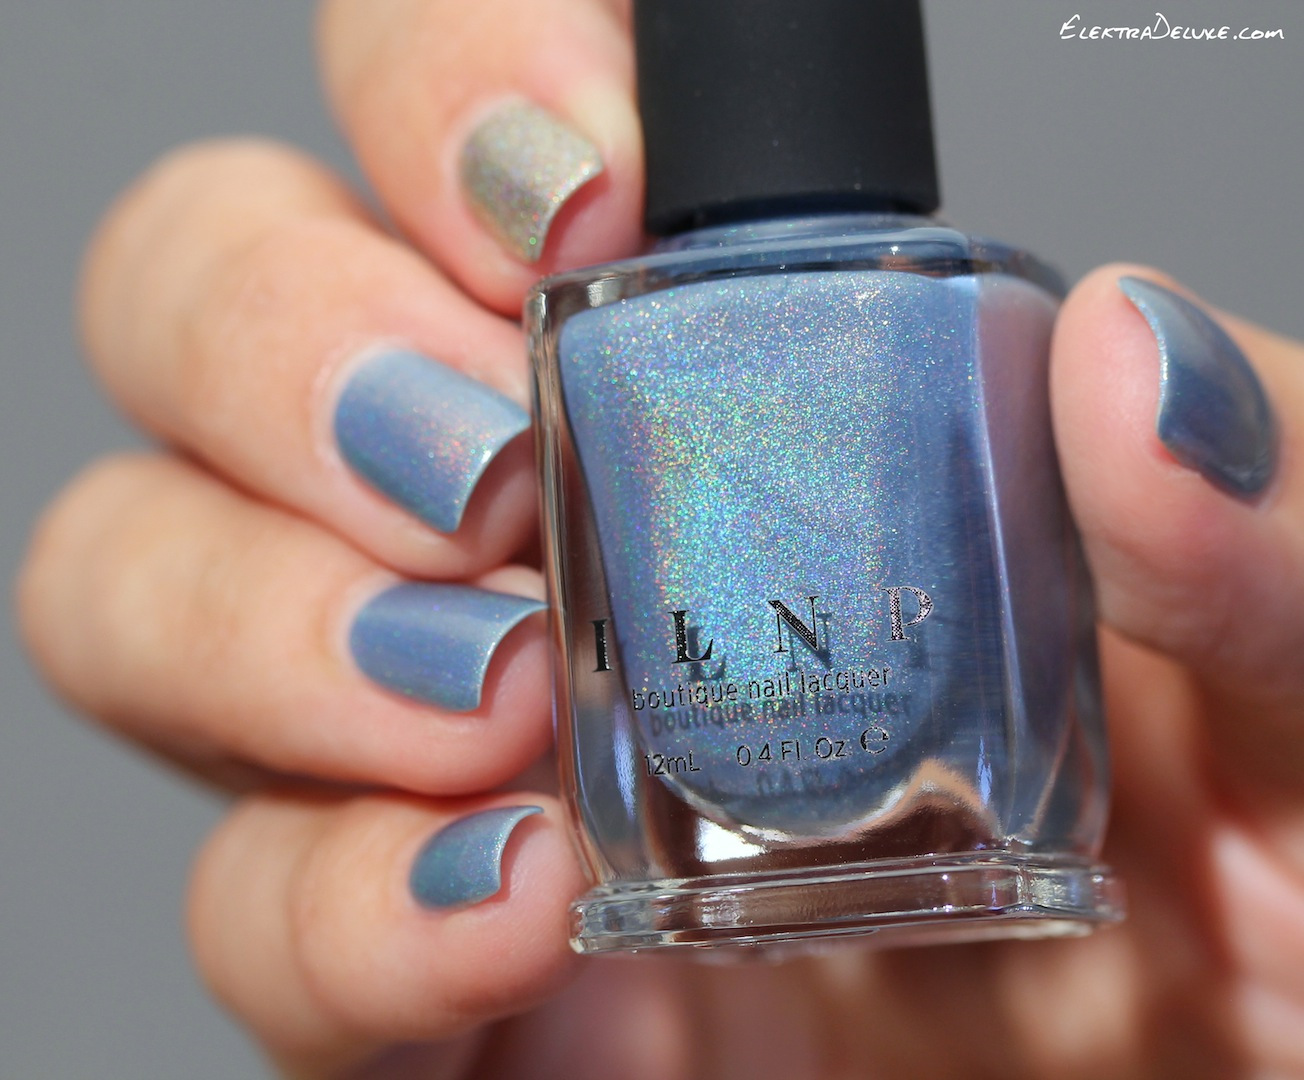 The perfect neutral Blue – Elektra Deluxe